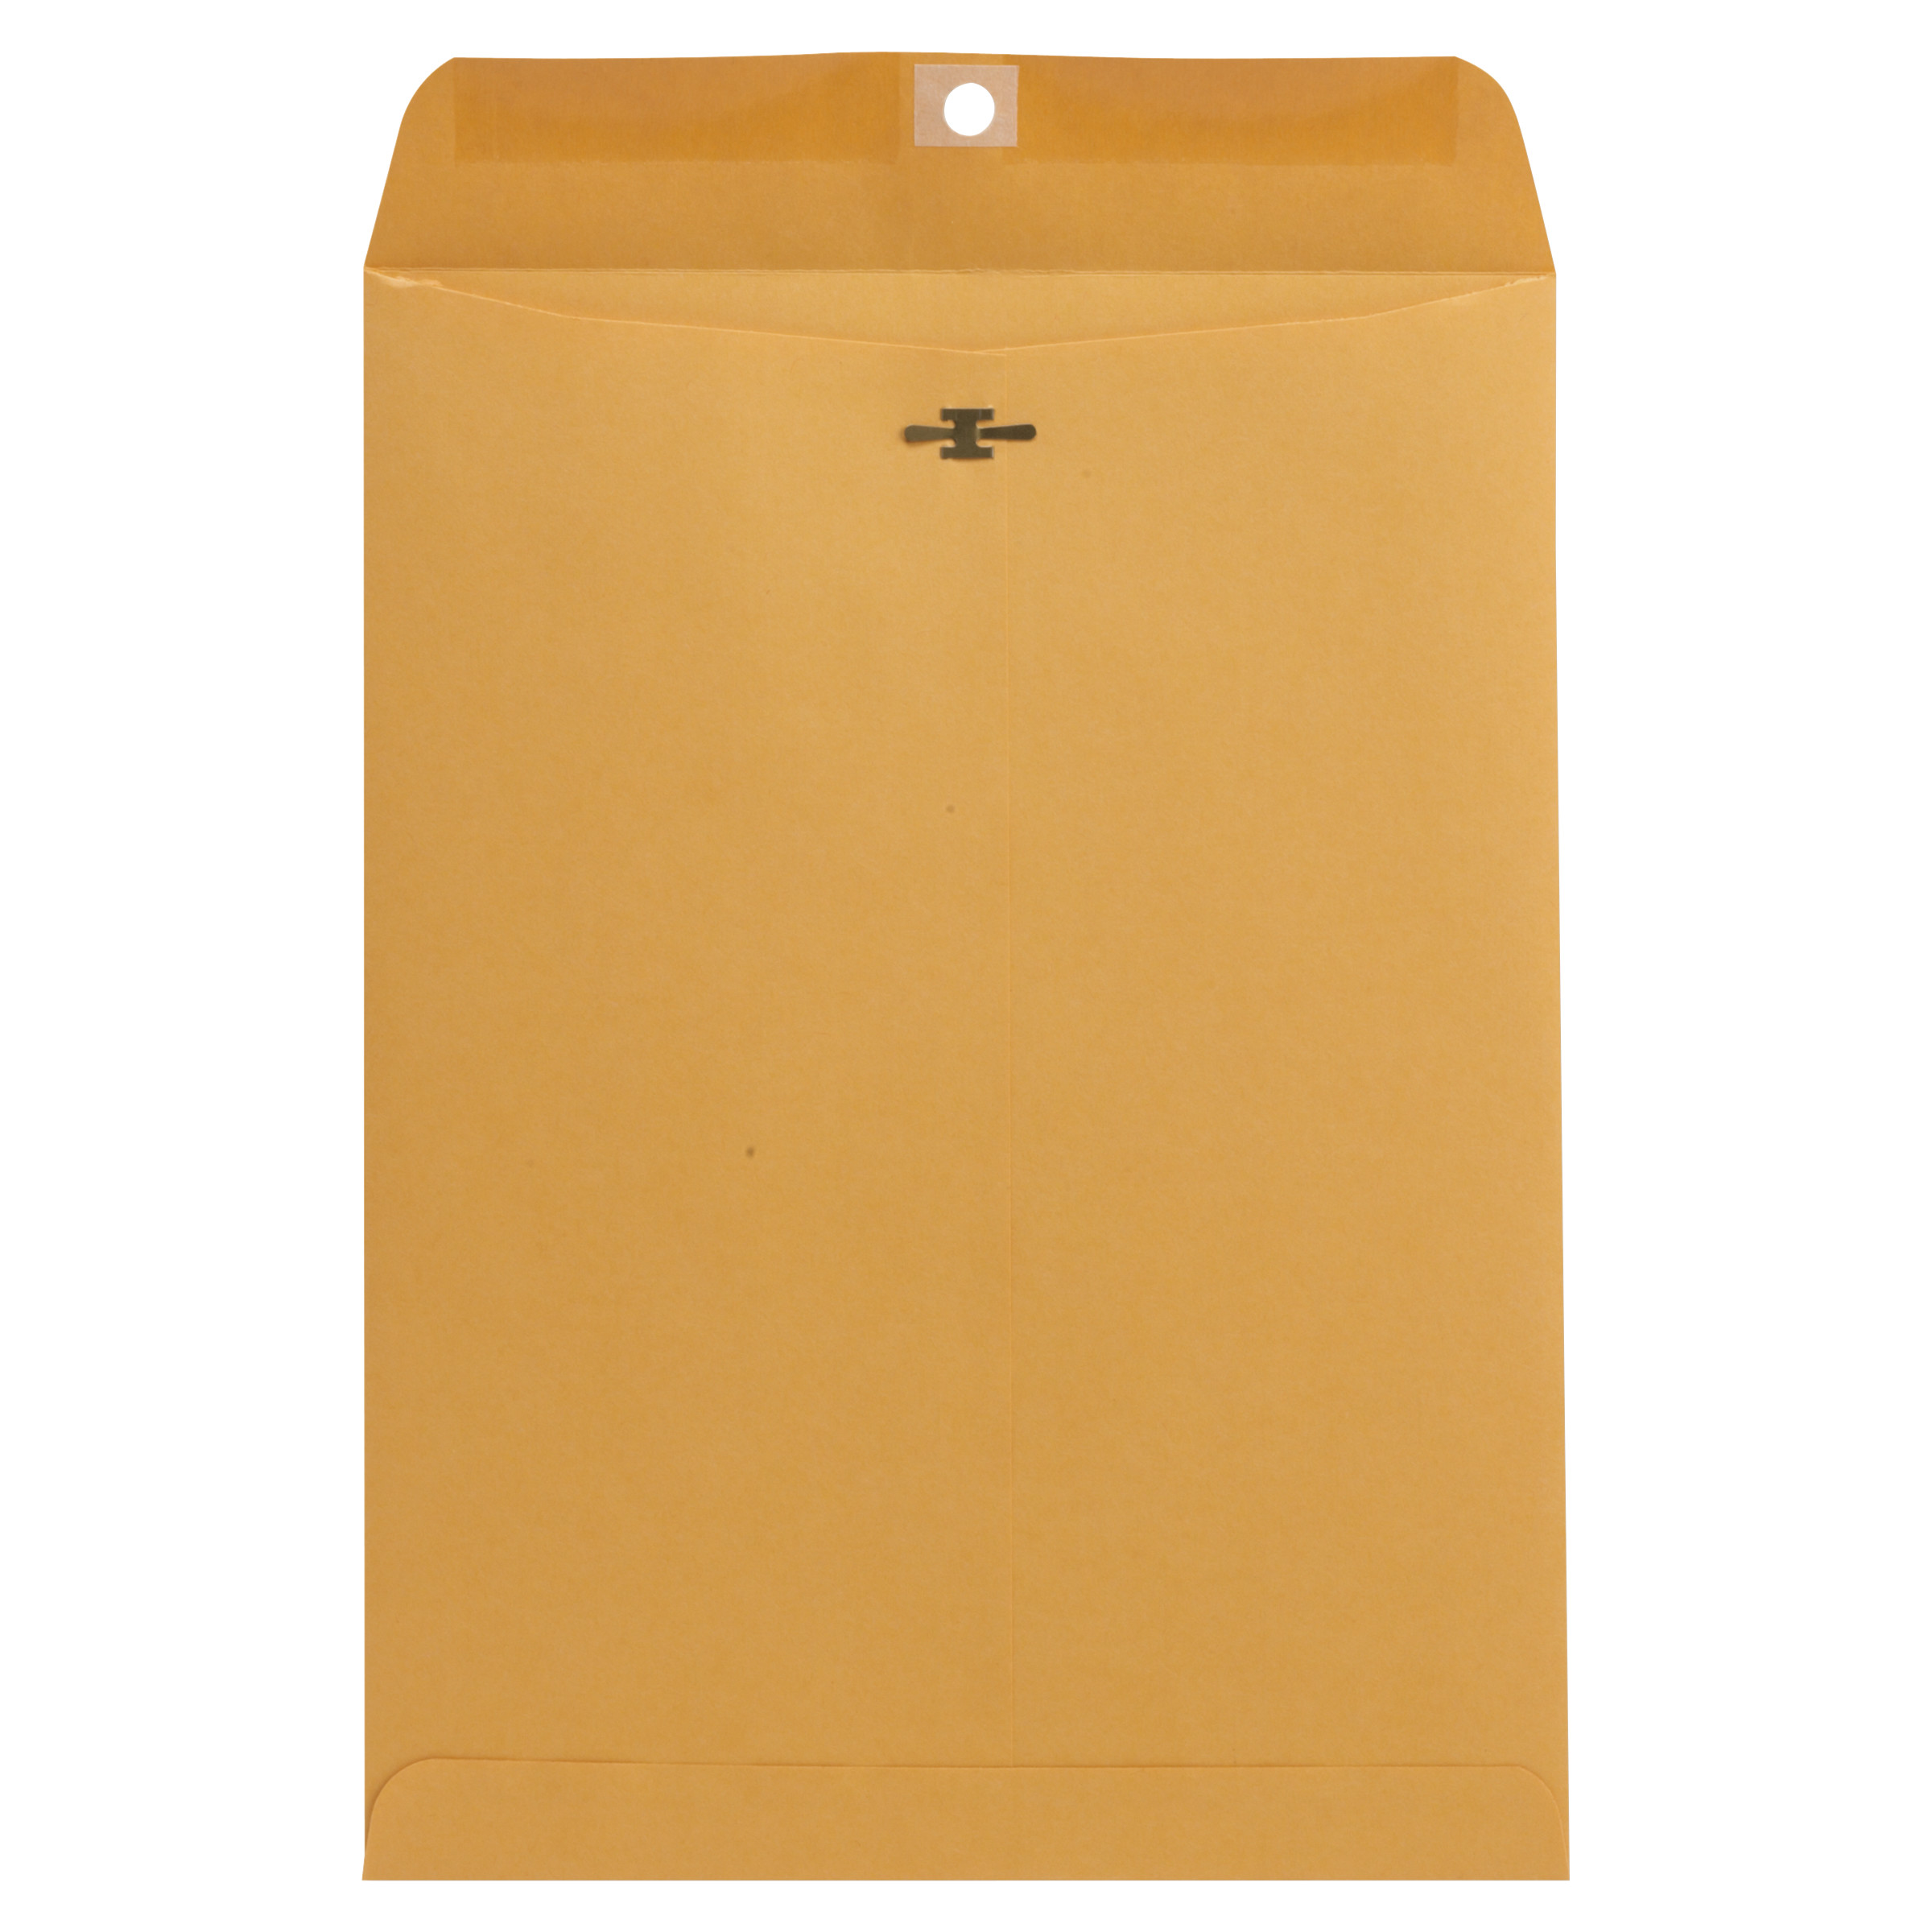 Kraft Clasp Envelope, Center Seam, 32lb, 9 x 12, Brown Kraft, 100/Box